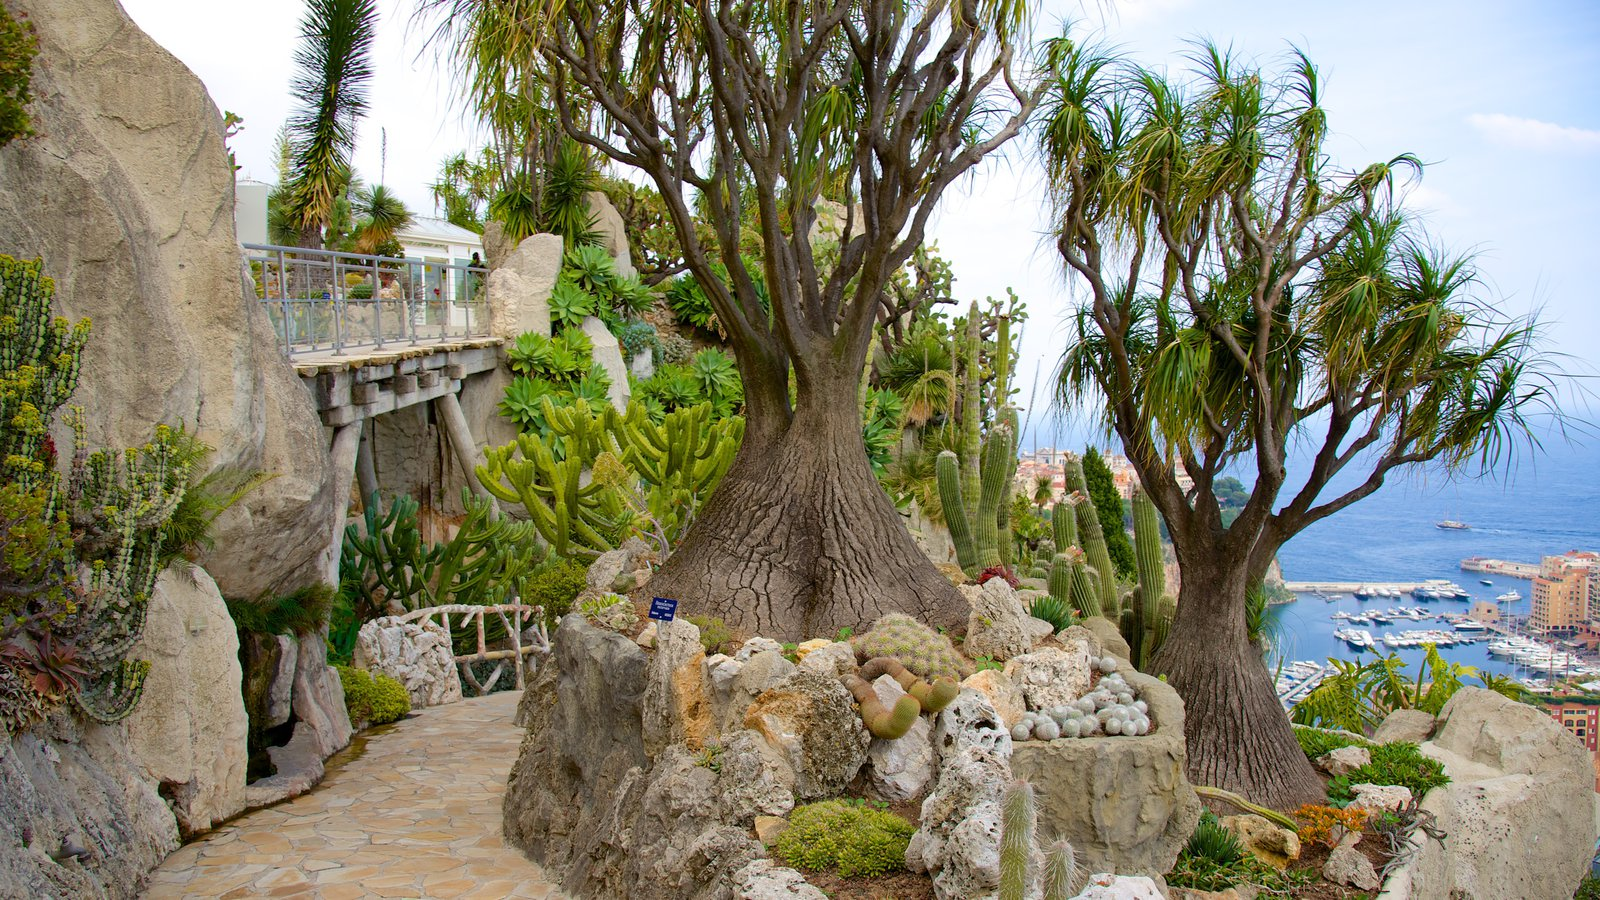 Exotic garden pictures view photos images of exotic garden for Jardin exotique